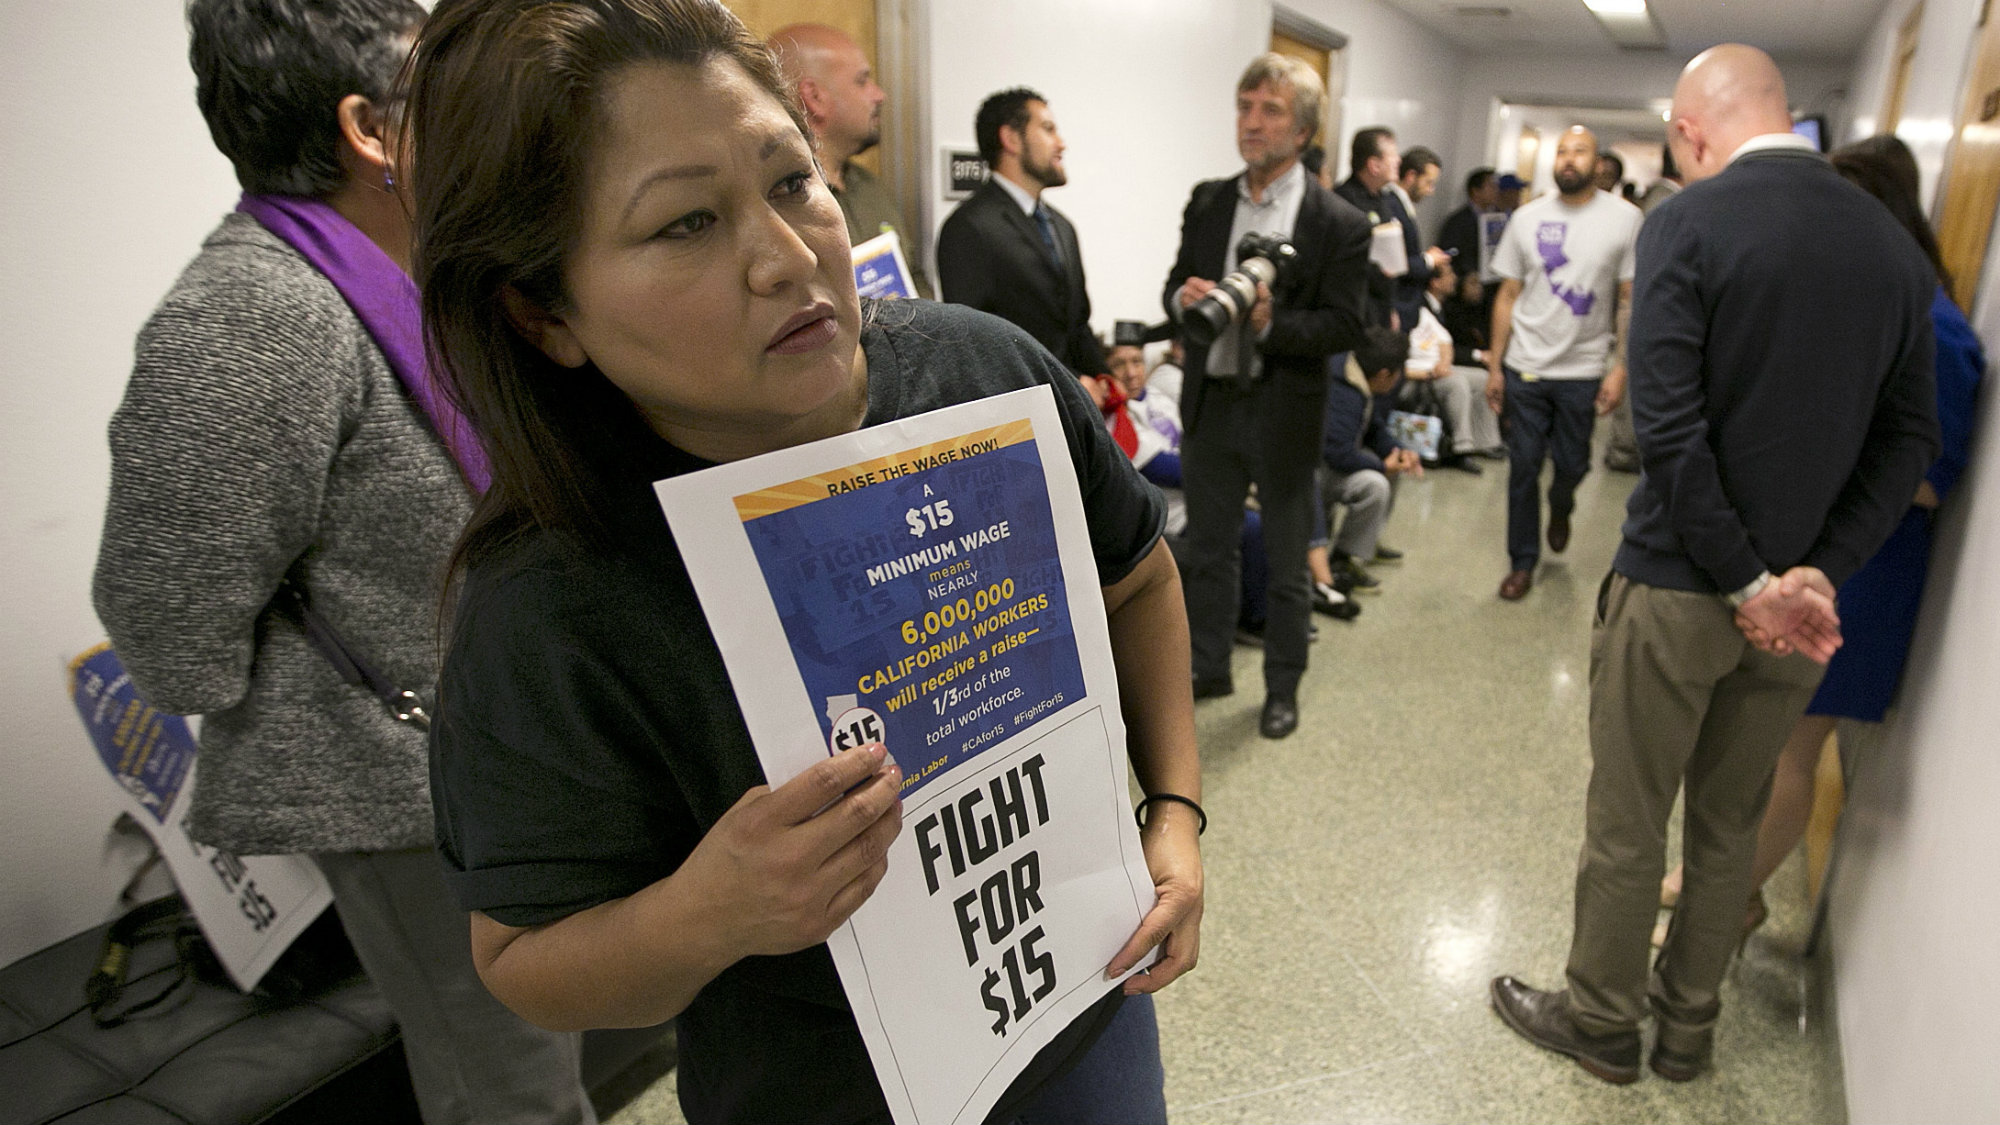 Teamster member Rocio Mejia, a supporter of a proposal to raise the state's minimum wage, joins others outside the Assembly Chambers calling for Assembly members to approve the measure, Thursday, March 31, 2016, in Sacramento, Calif.